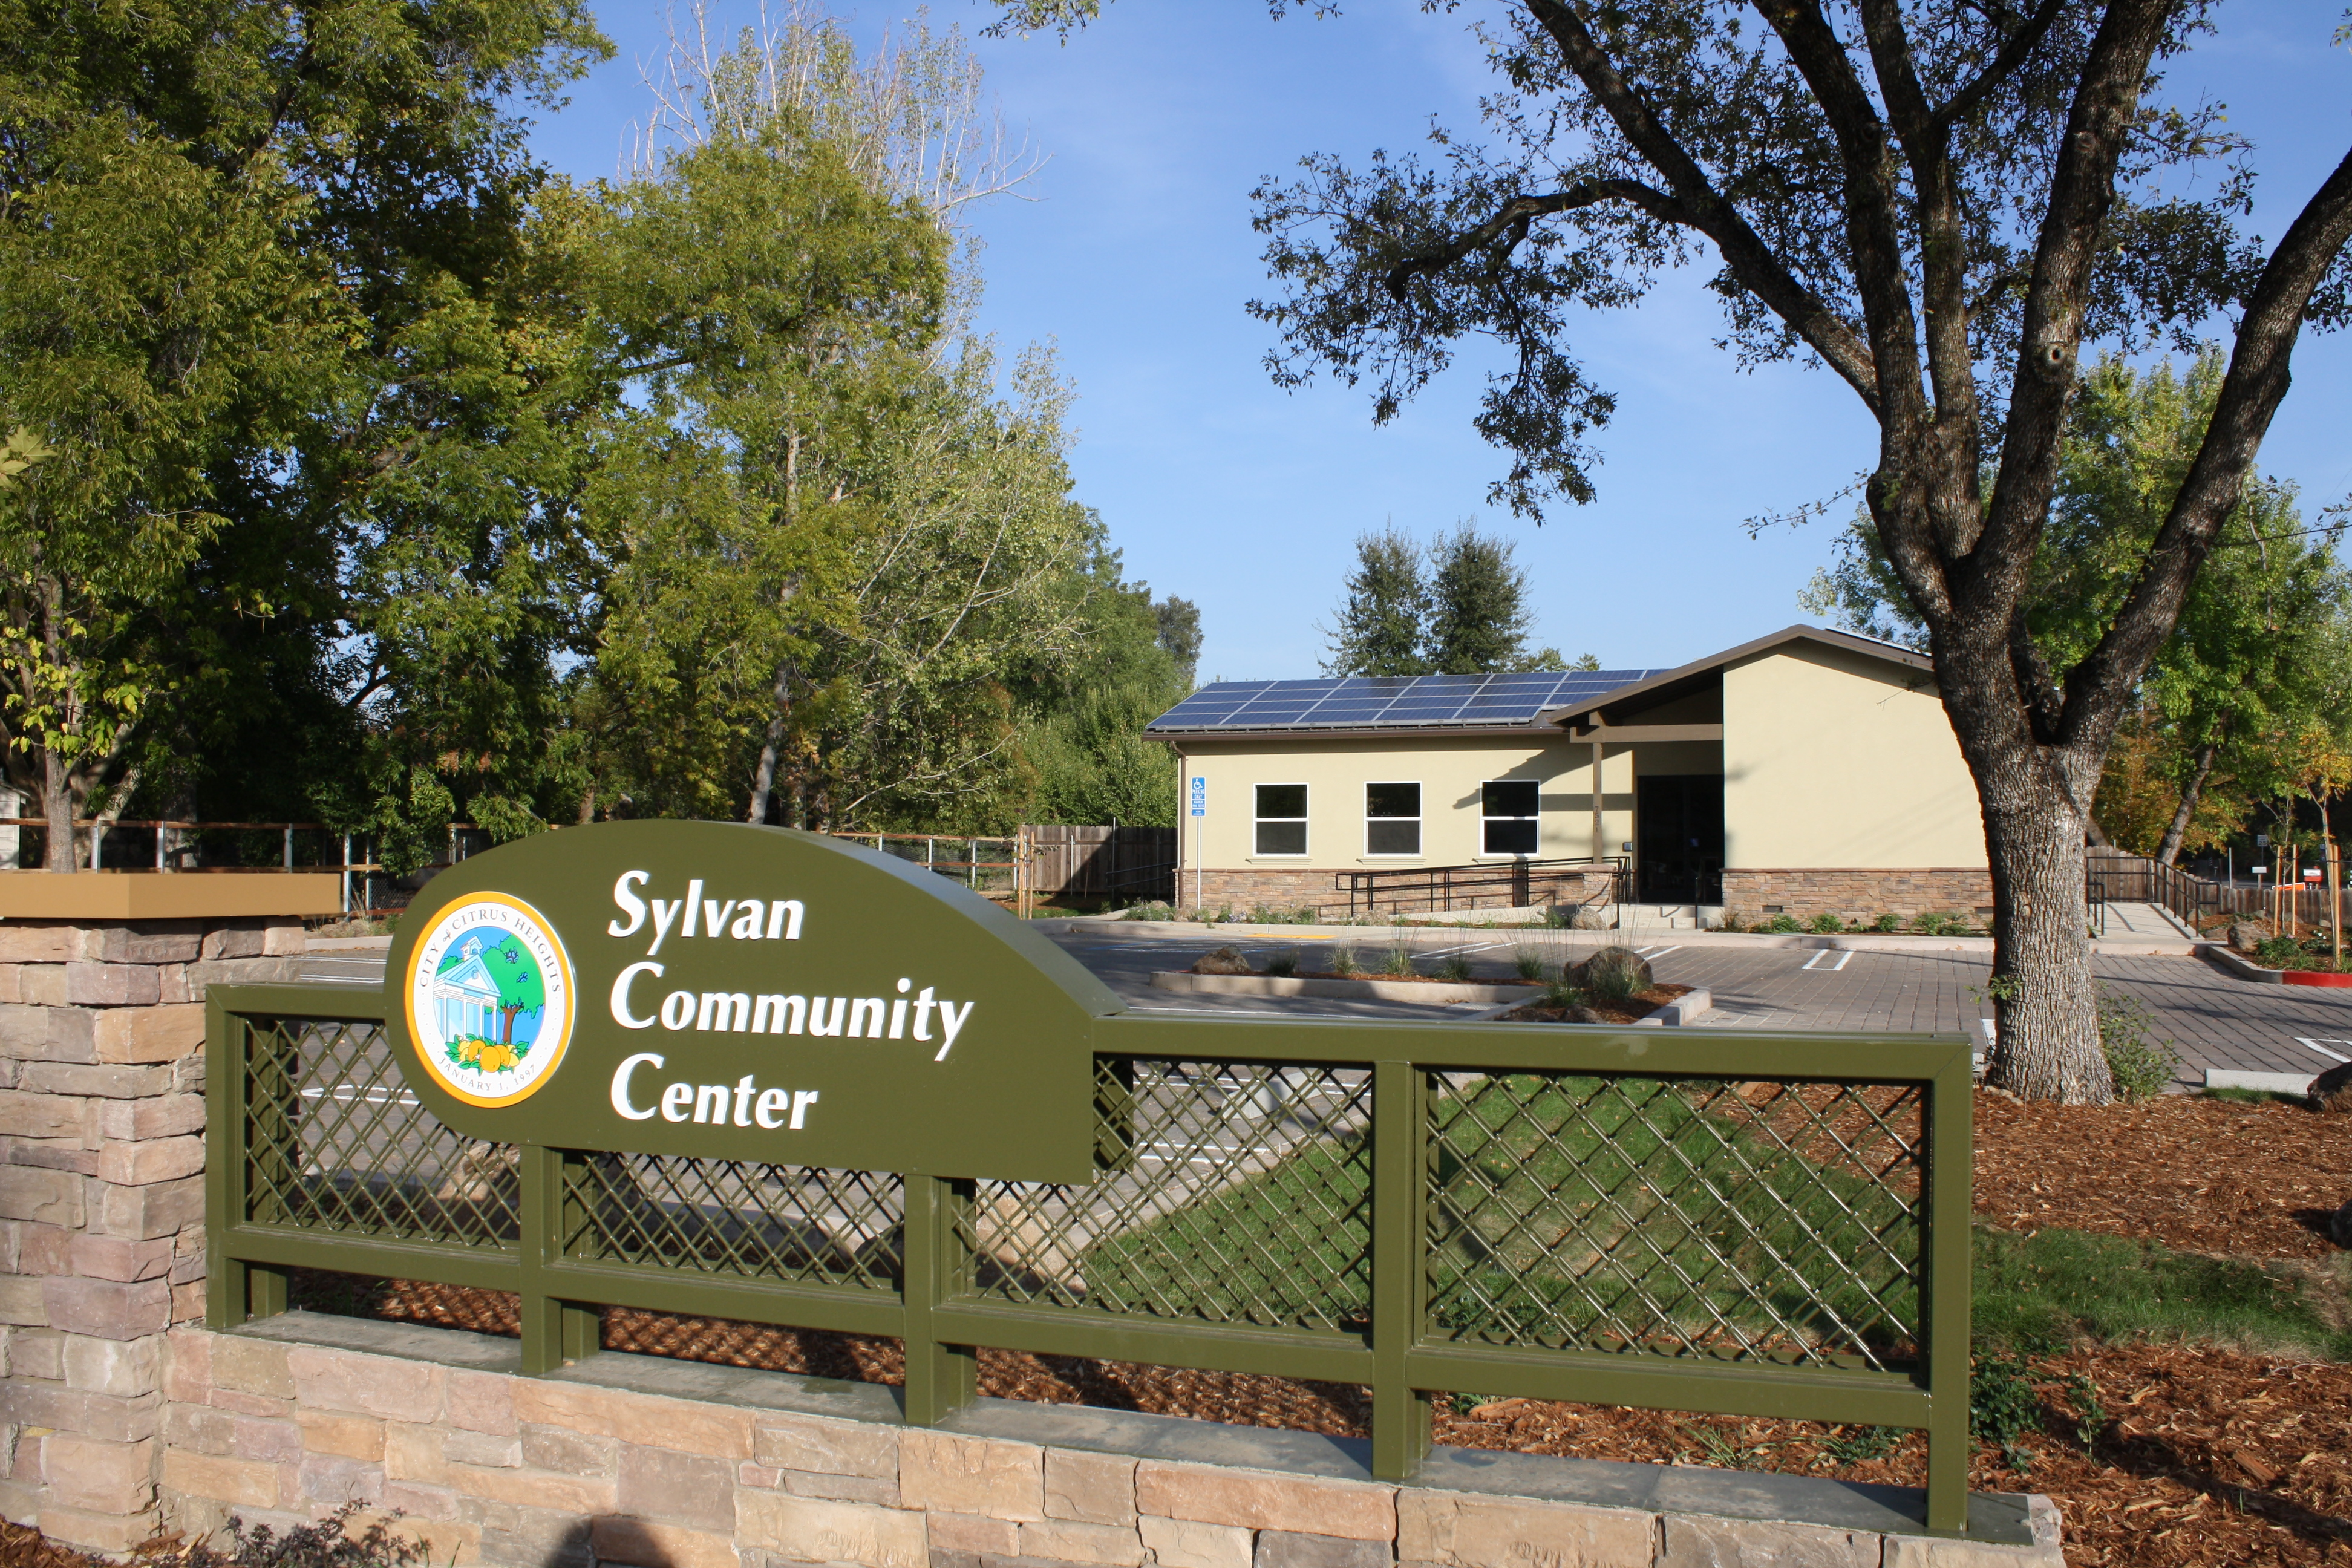 Sylvan Community Center